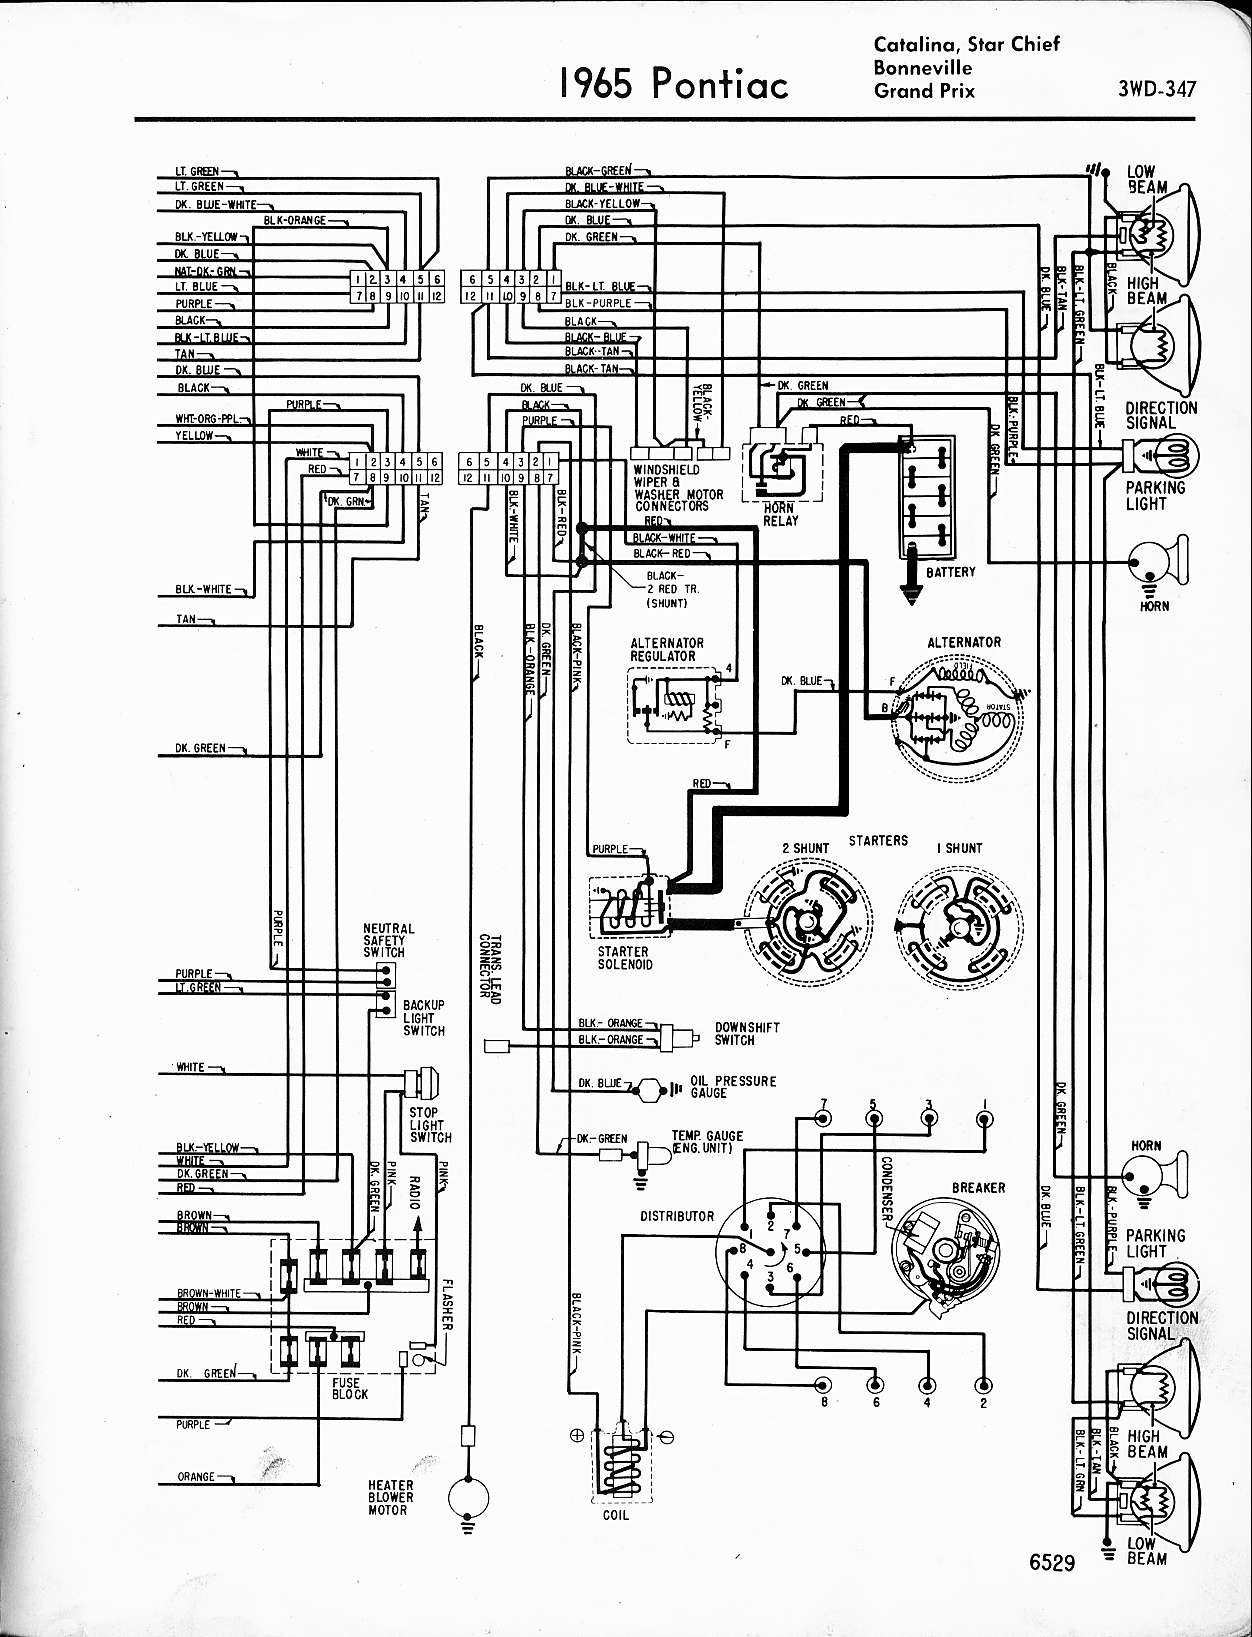 MWire5765 347 pontiac wiring diagrams pontiac grand prix wiring diagrams \u2022 free 1992 pontiac bonneville wiring diagram at bayanpartner.co